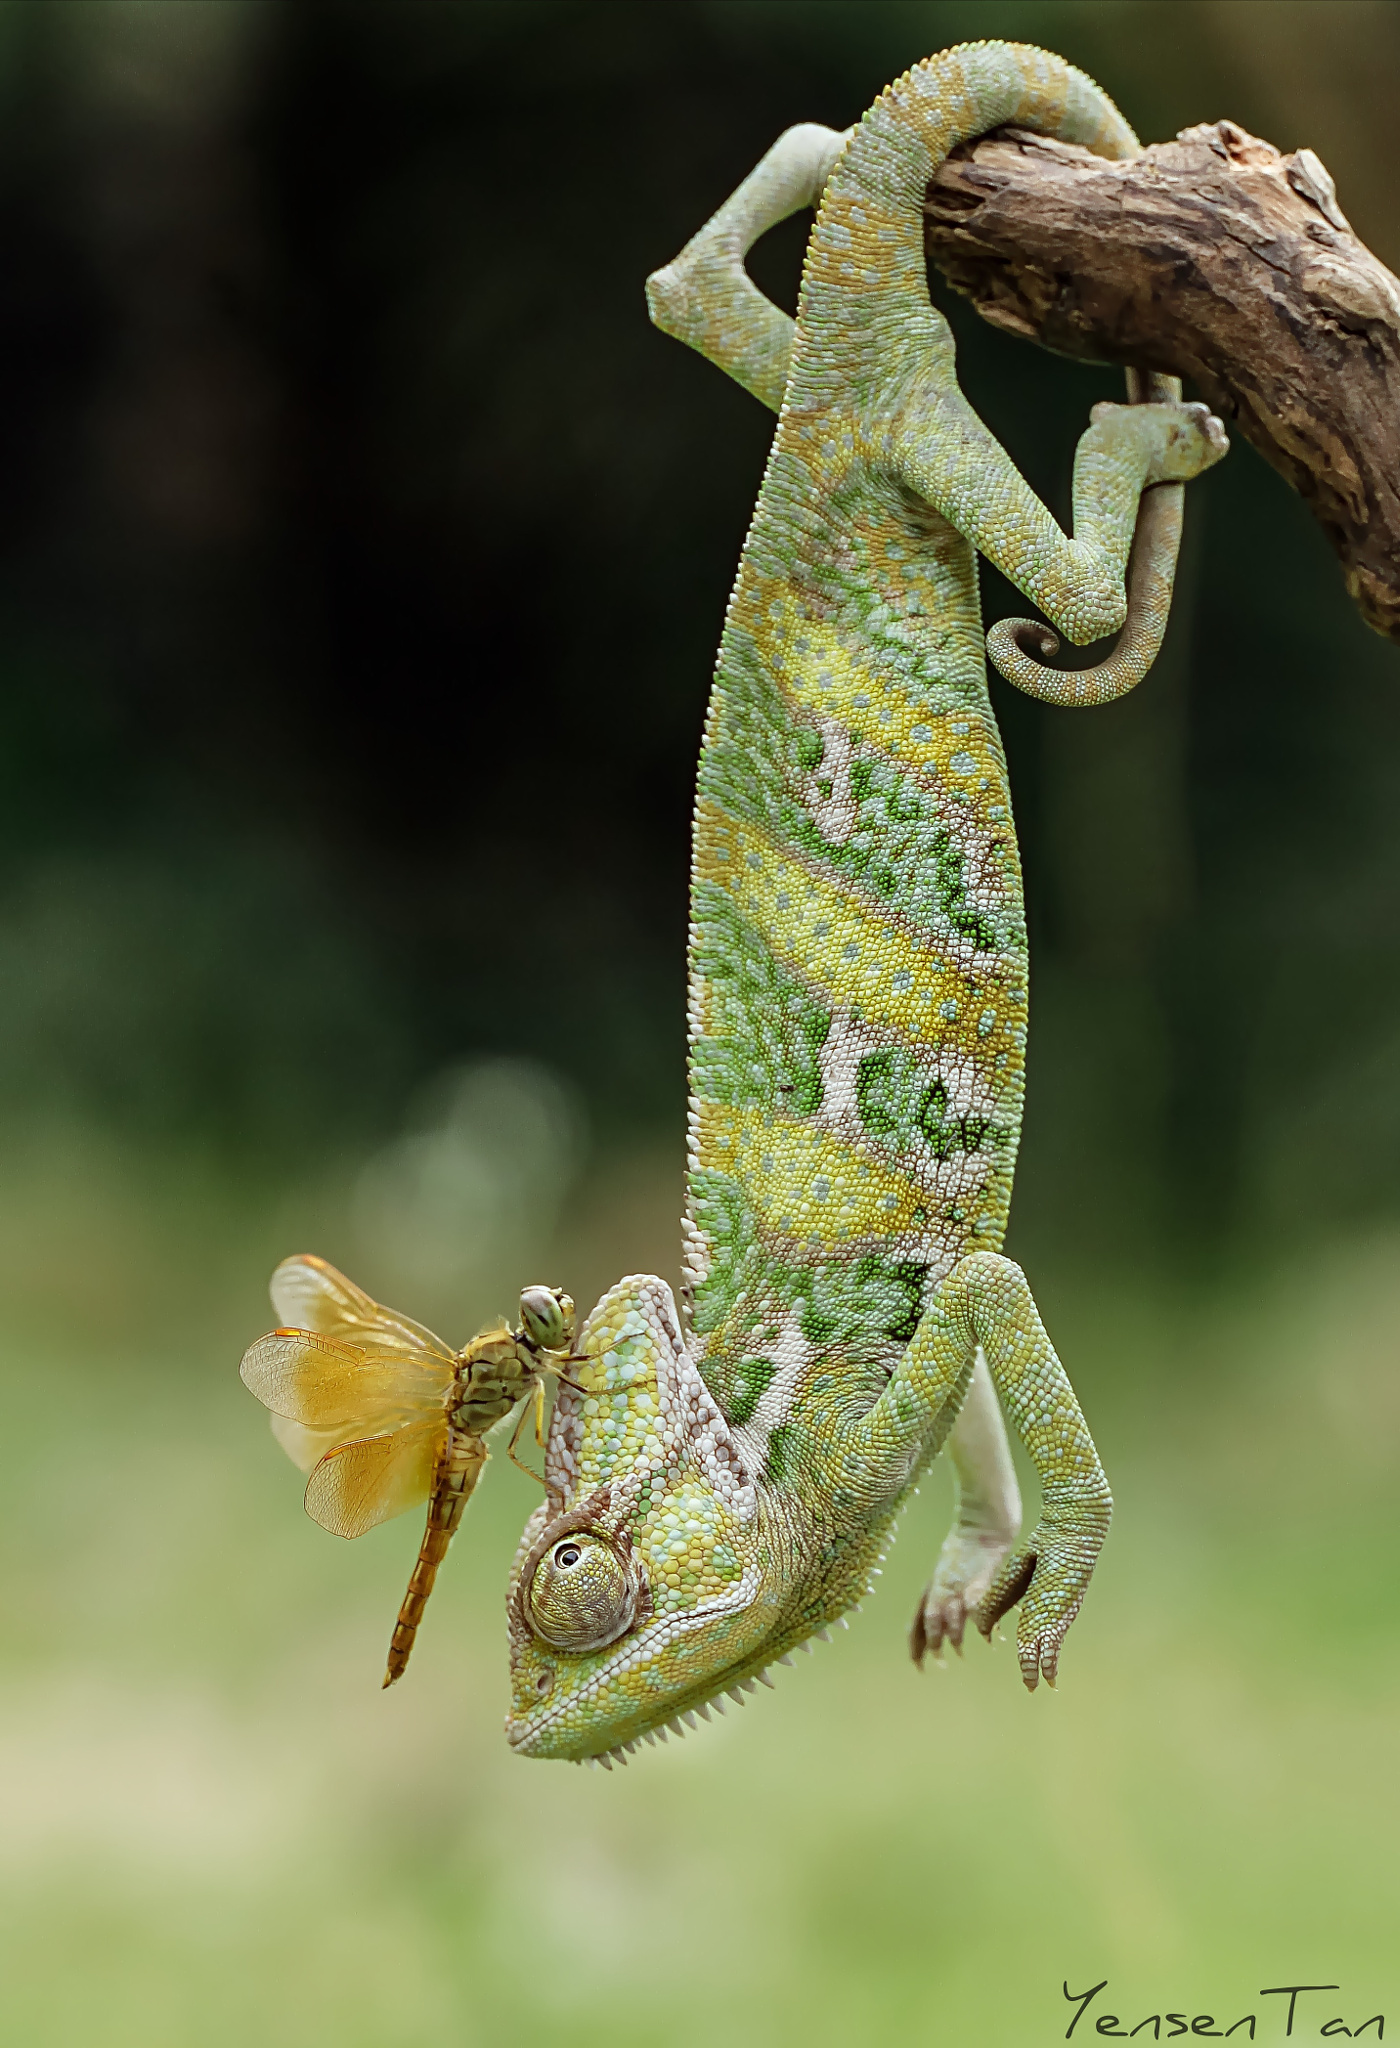 A-Veiled-Chameleon-With-Dragonfly-Atop-His-Head-Photo-By-Tantoyensen-on-px-wallpaper-wp5004228